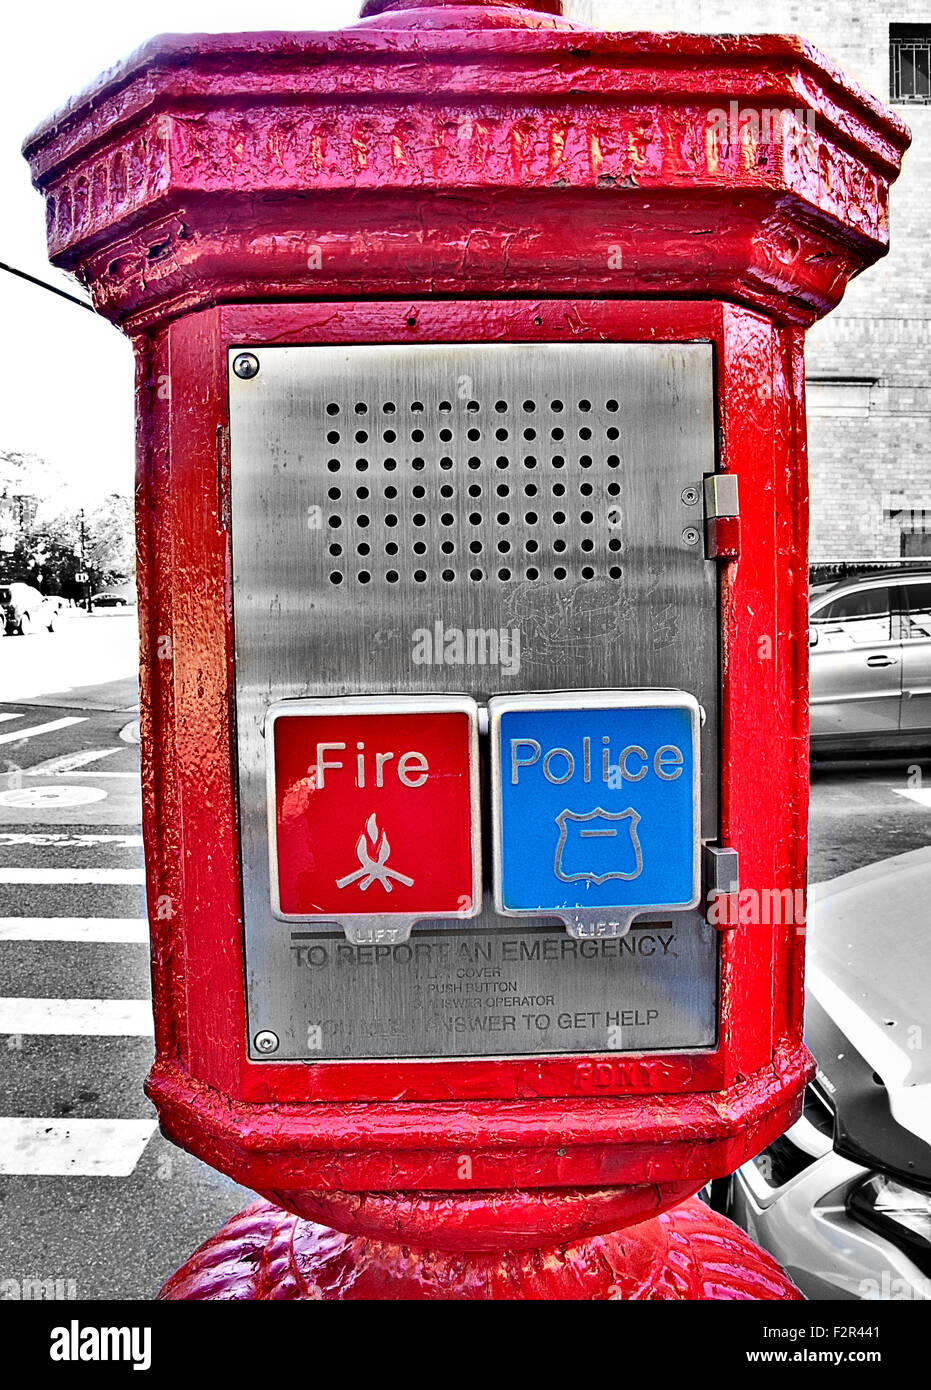 Public emergency call box phone with red fire department and